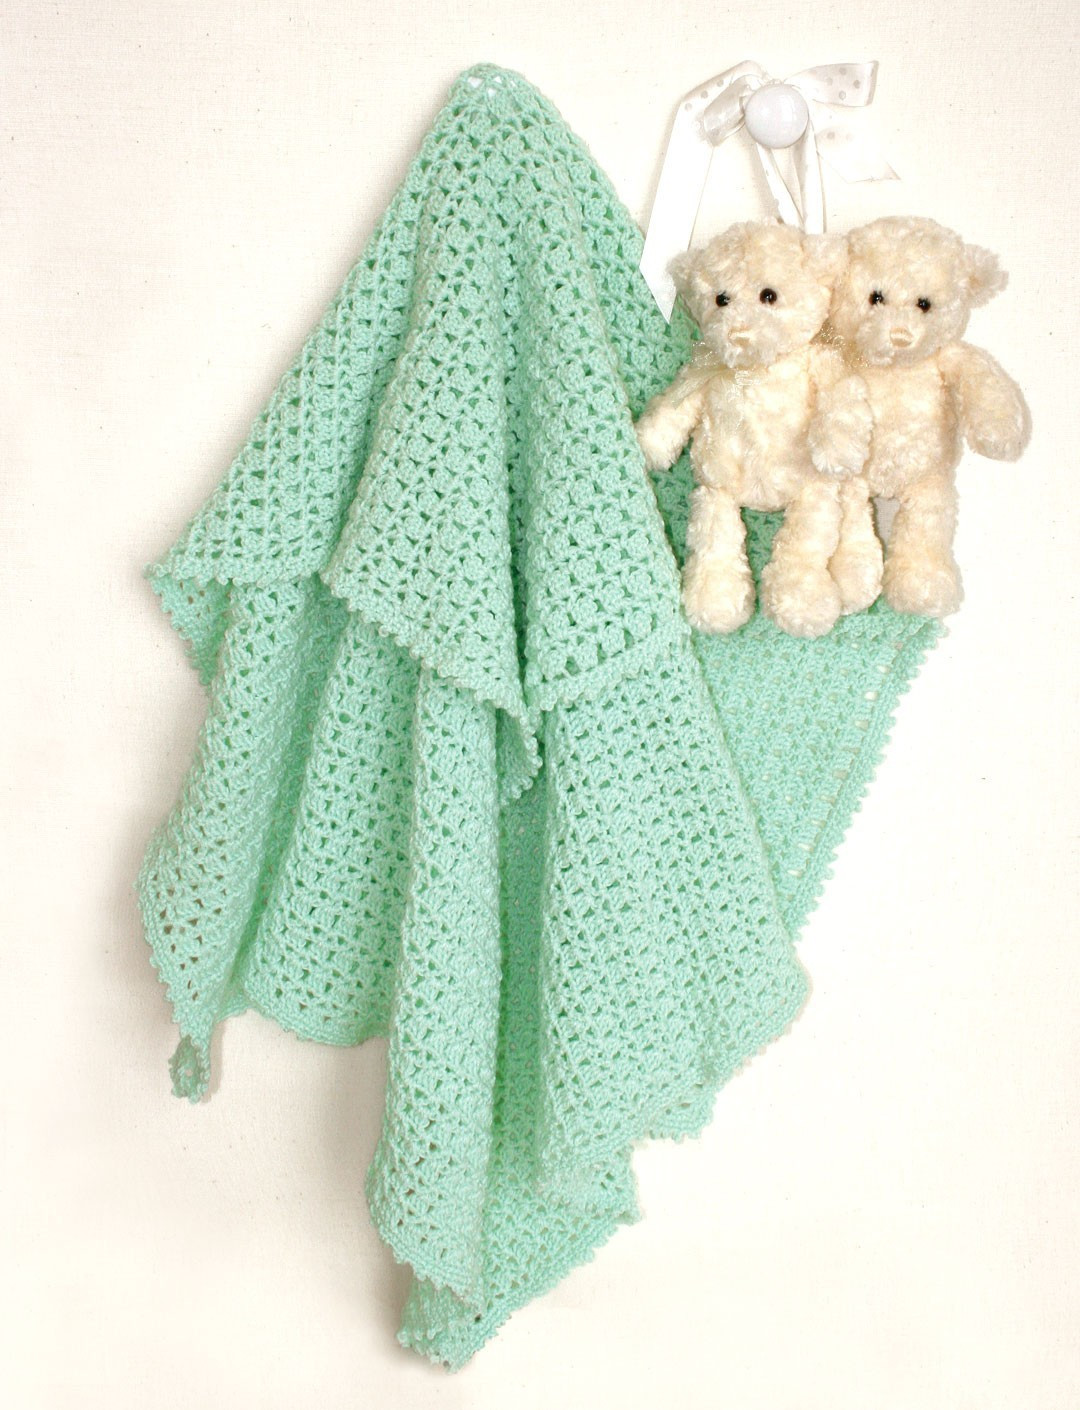 New Crochet Baby Blanket In Bernat Baby Sport Bernat Free Patterns Of Fresh 47 Photos Bernat Free Patterns